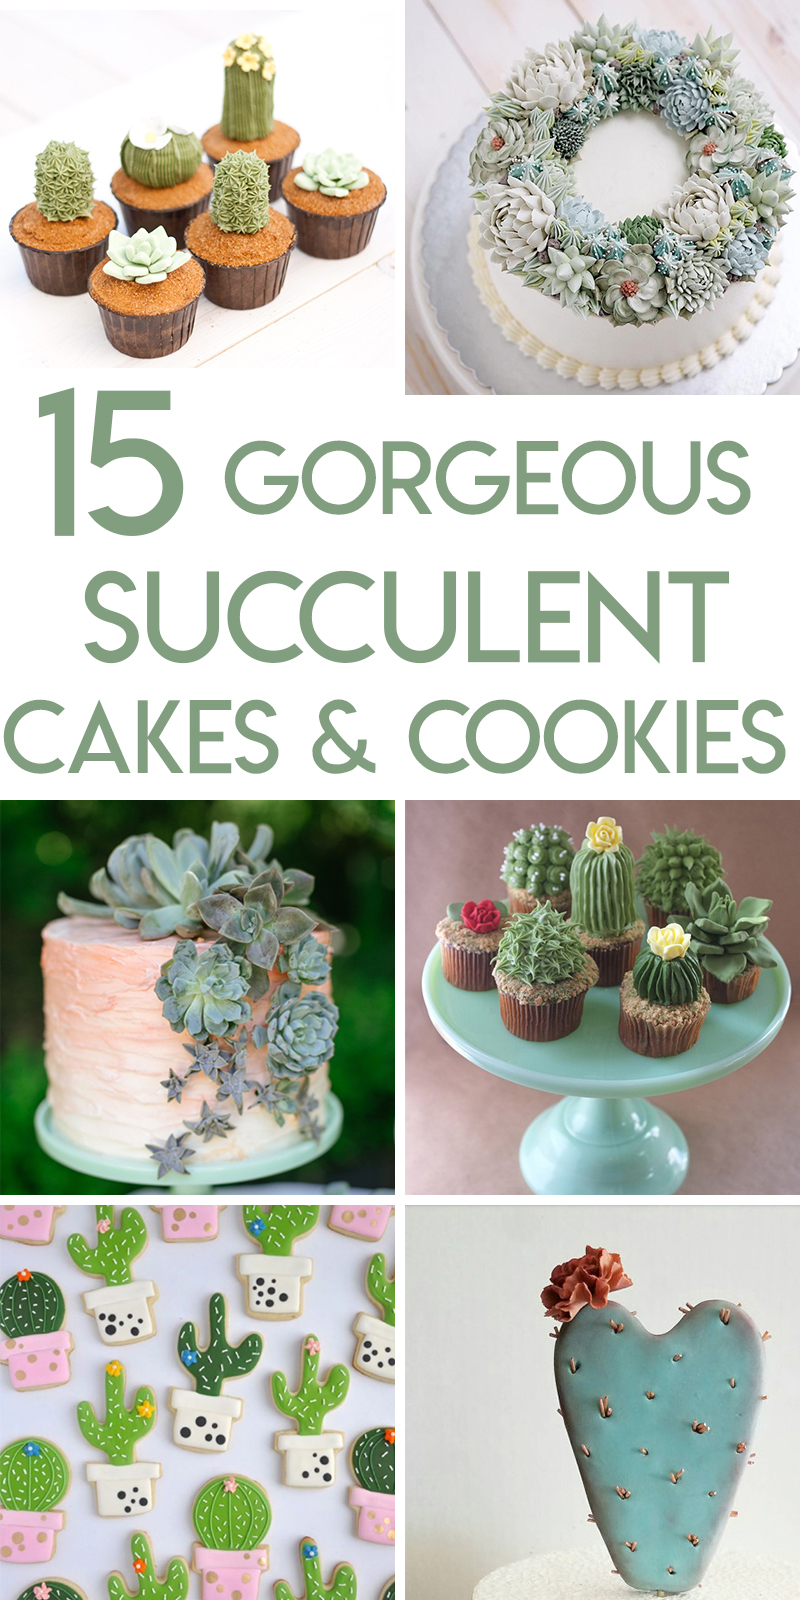 15 Stunning succulent cakes, cupcakes, and cookies